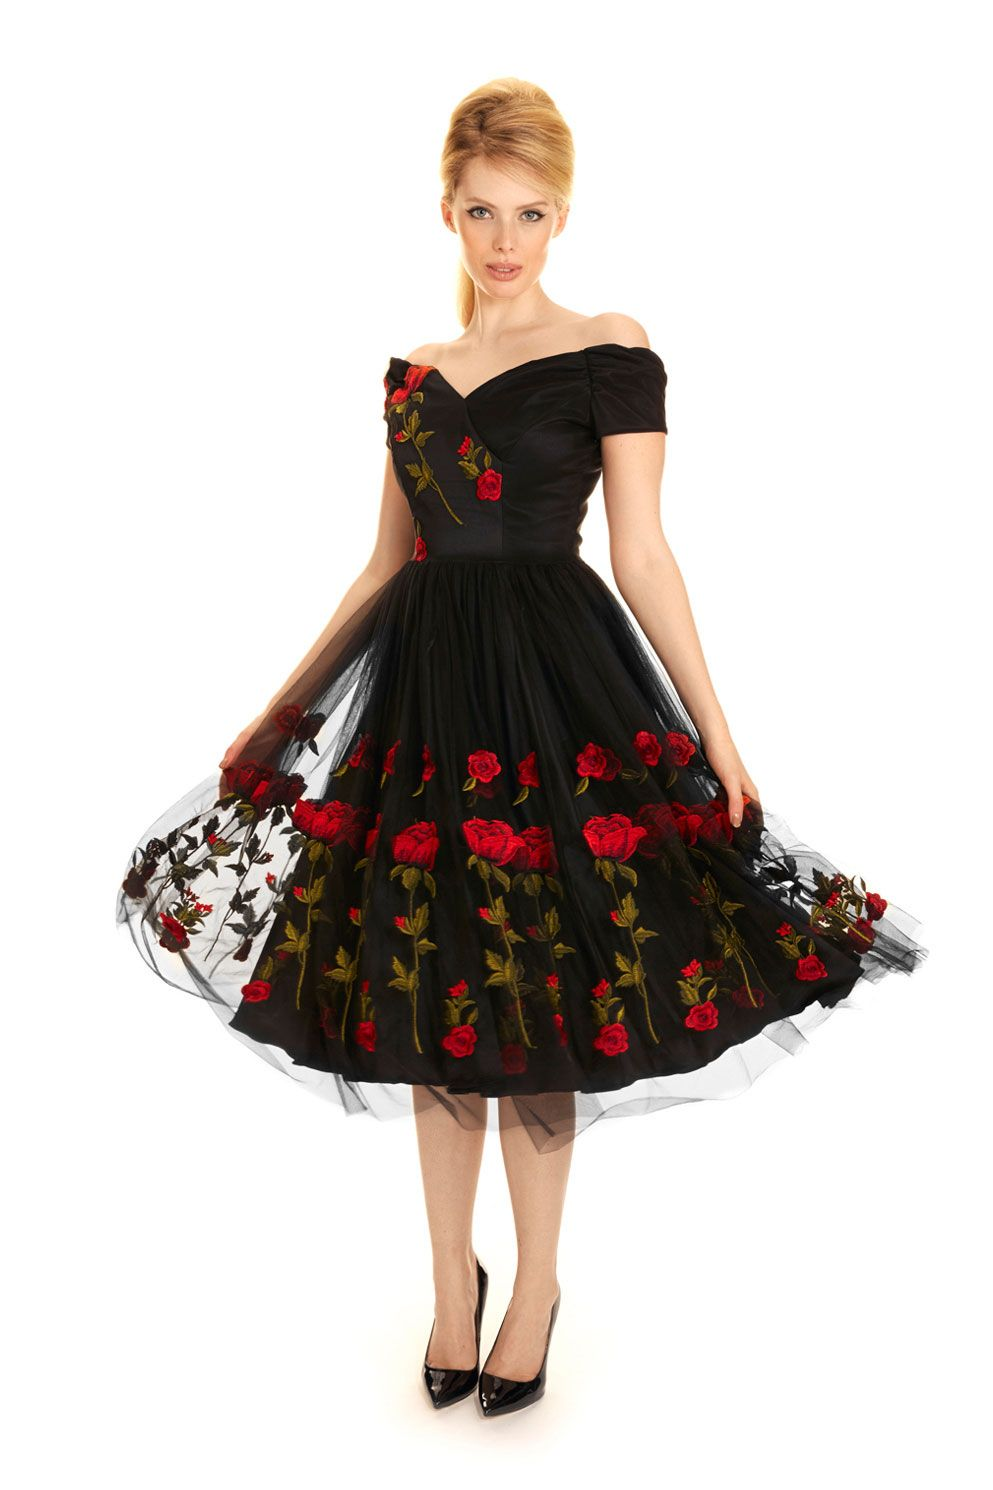 Fatale Embroidered Prom Dress Pretty Dresses Dresses Colorful Dresses [ 1490 x 993 Pixel ]